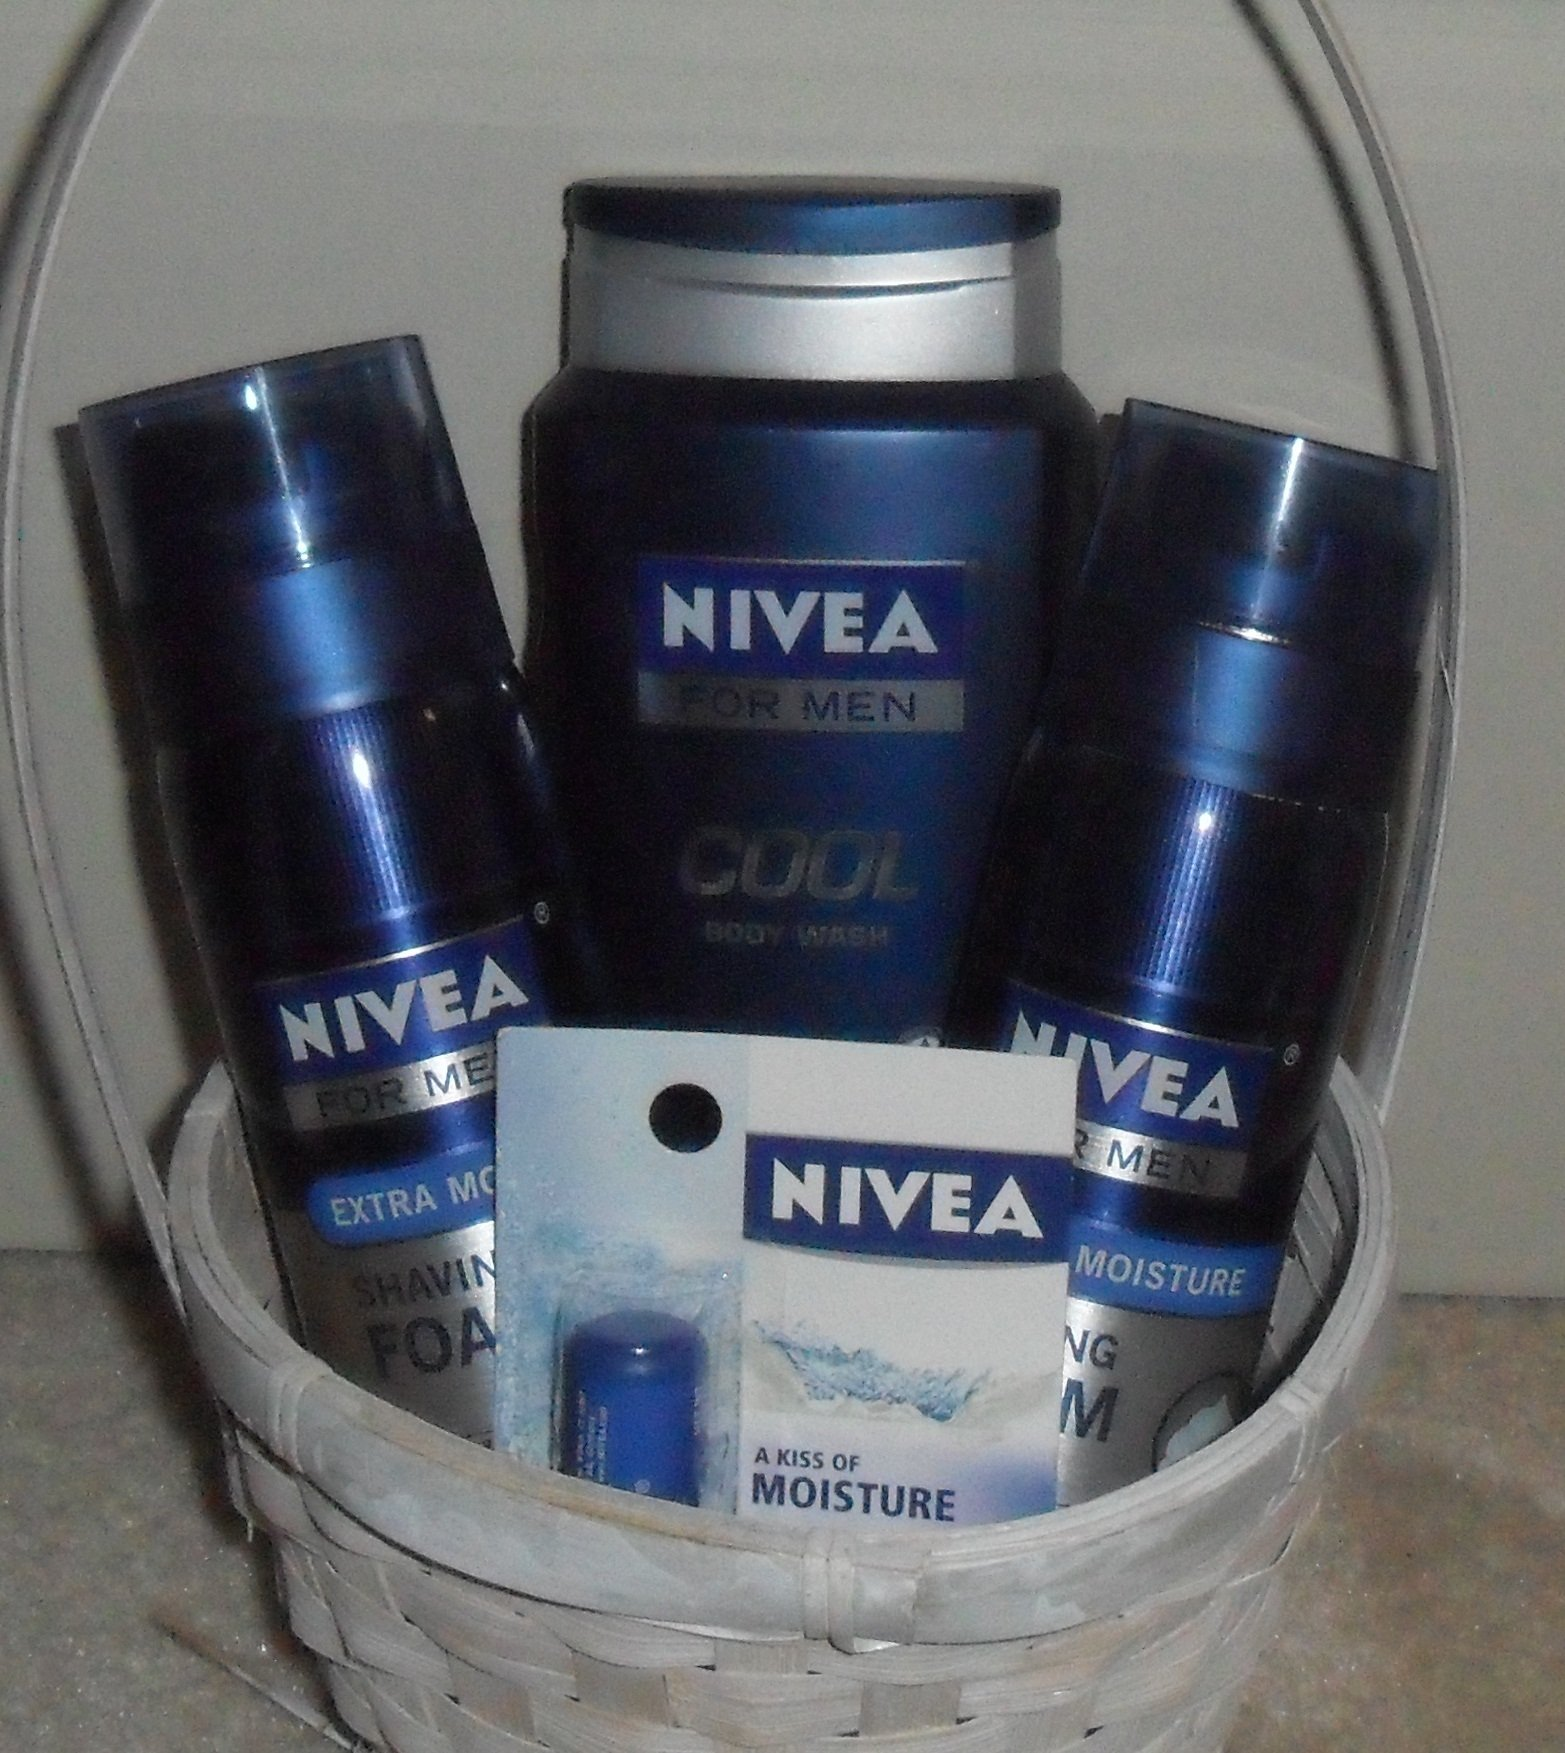 10 Cute Gift Baskets For Men Ideas homemaking mom blog archive couponing for christmas part 1 2020